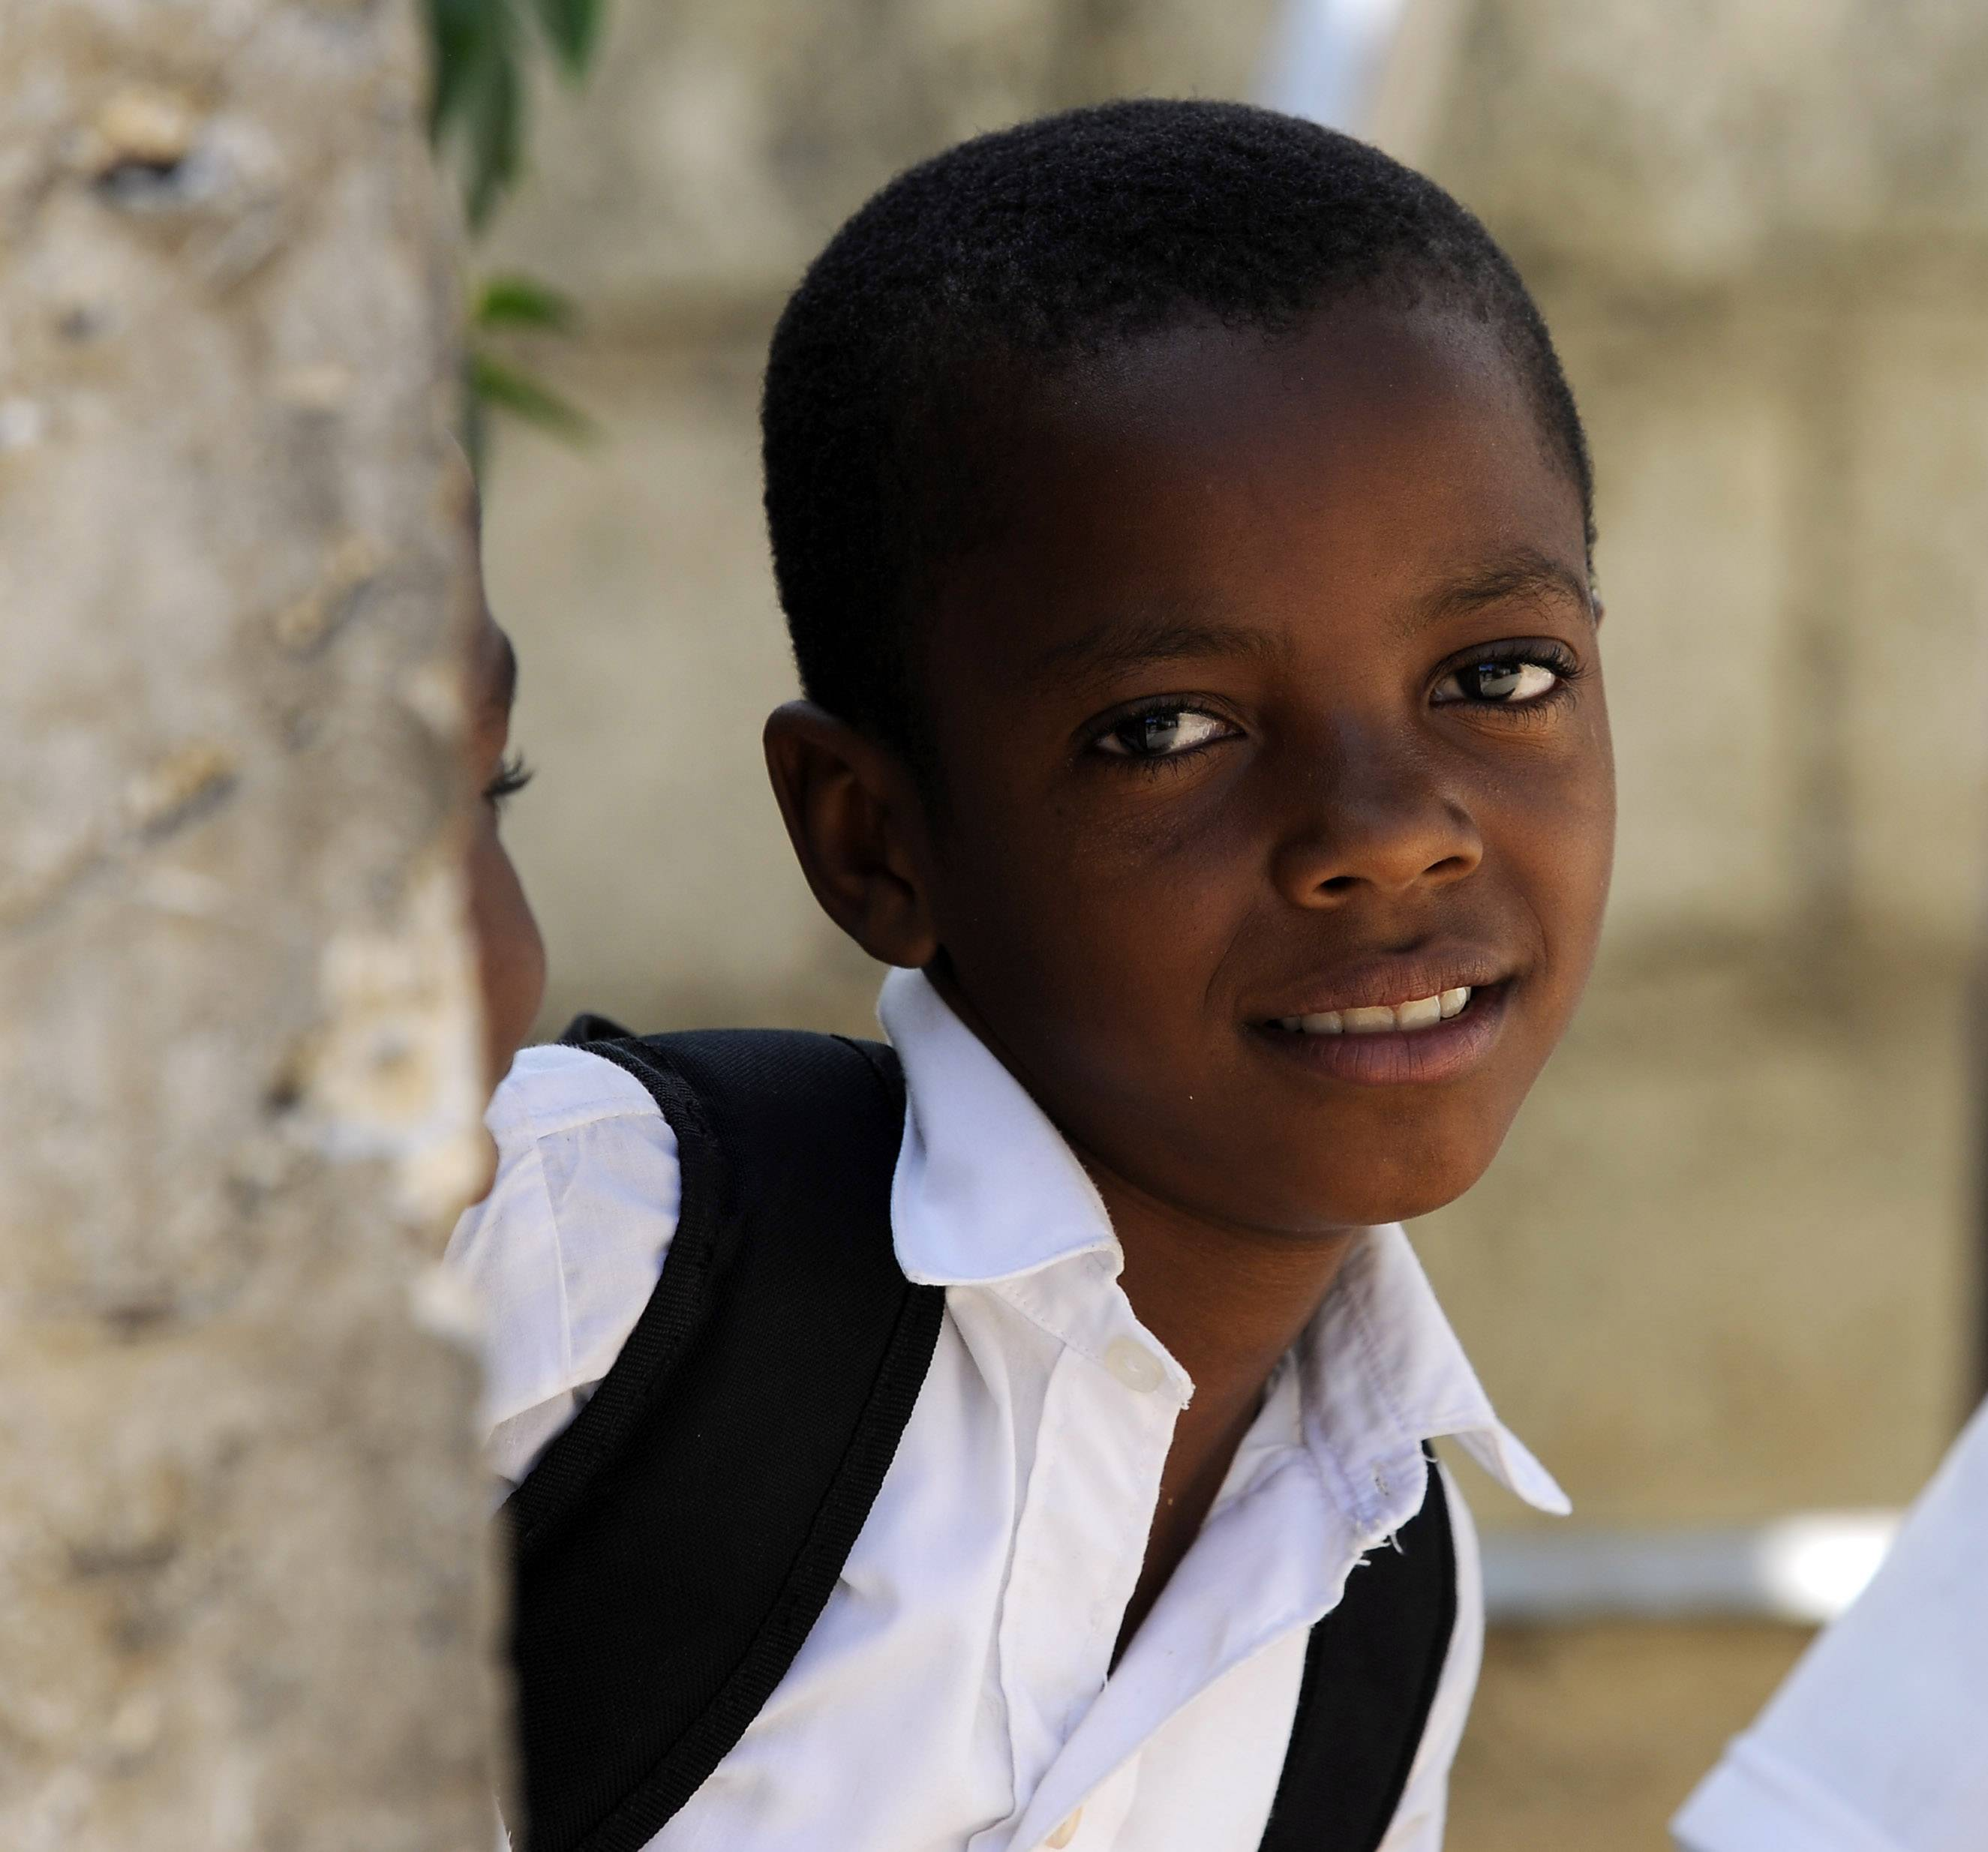 A young schoolboy walks home after school in Jacmel, Haiti.